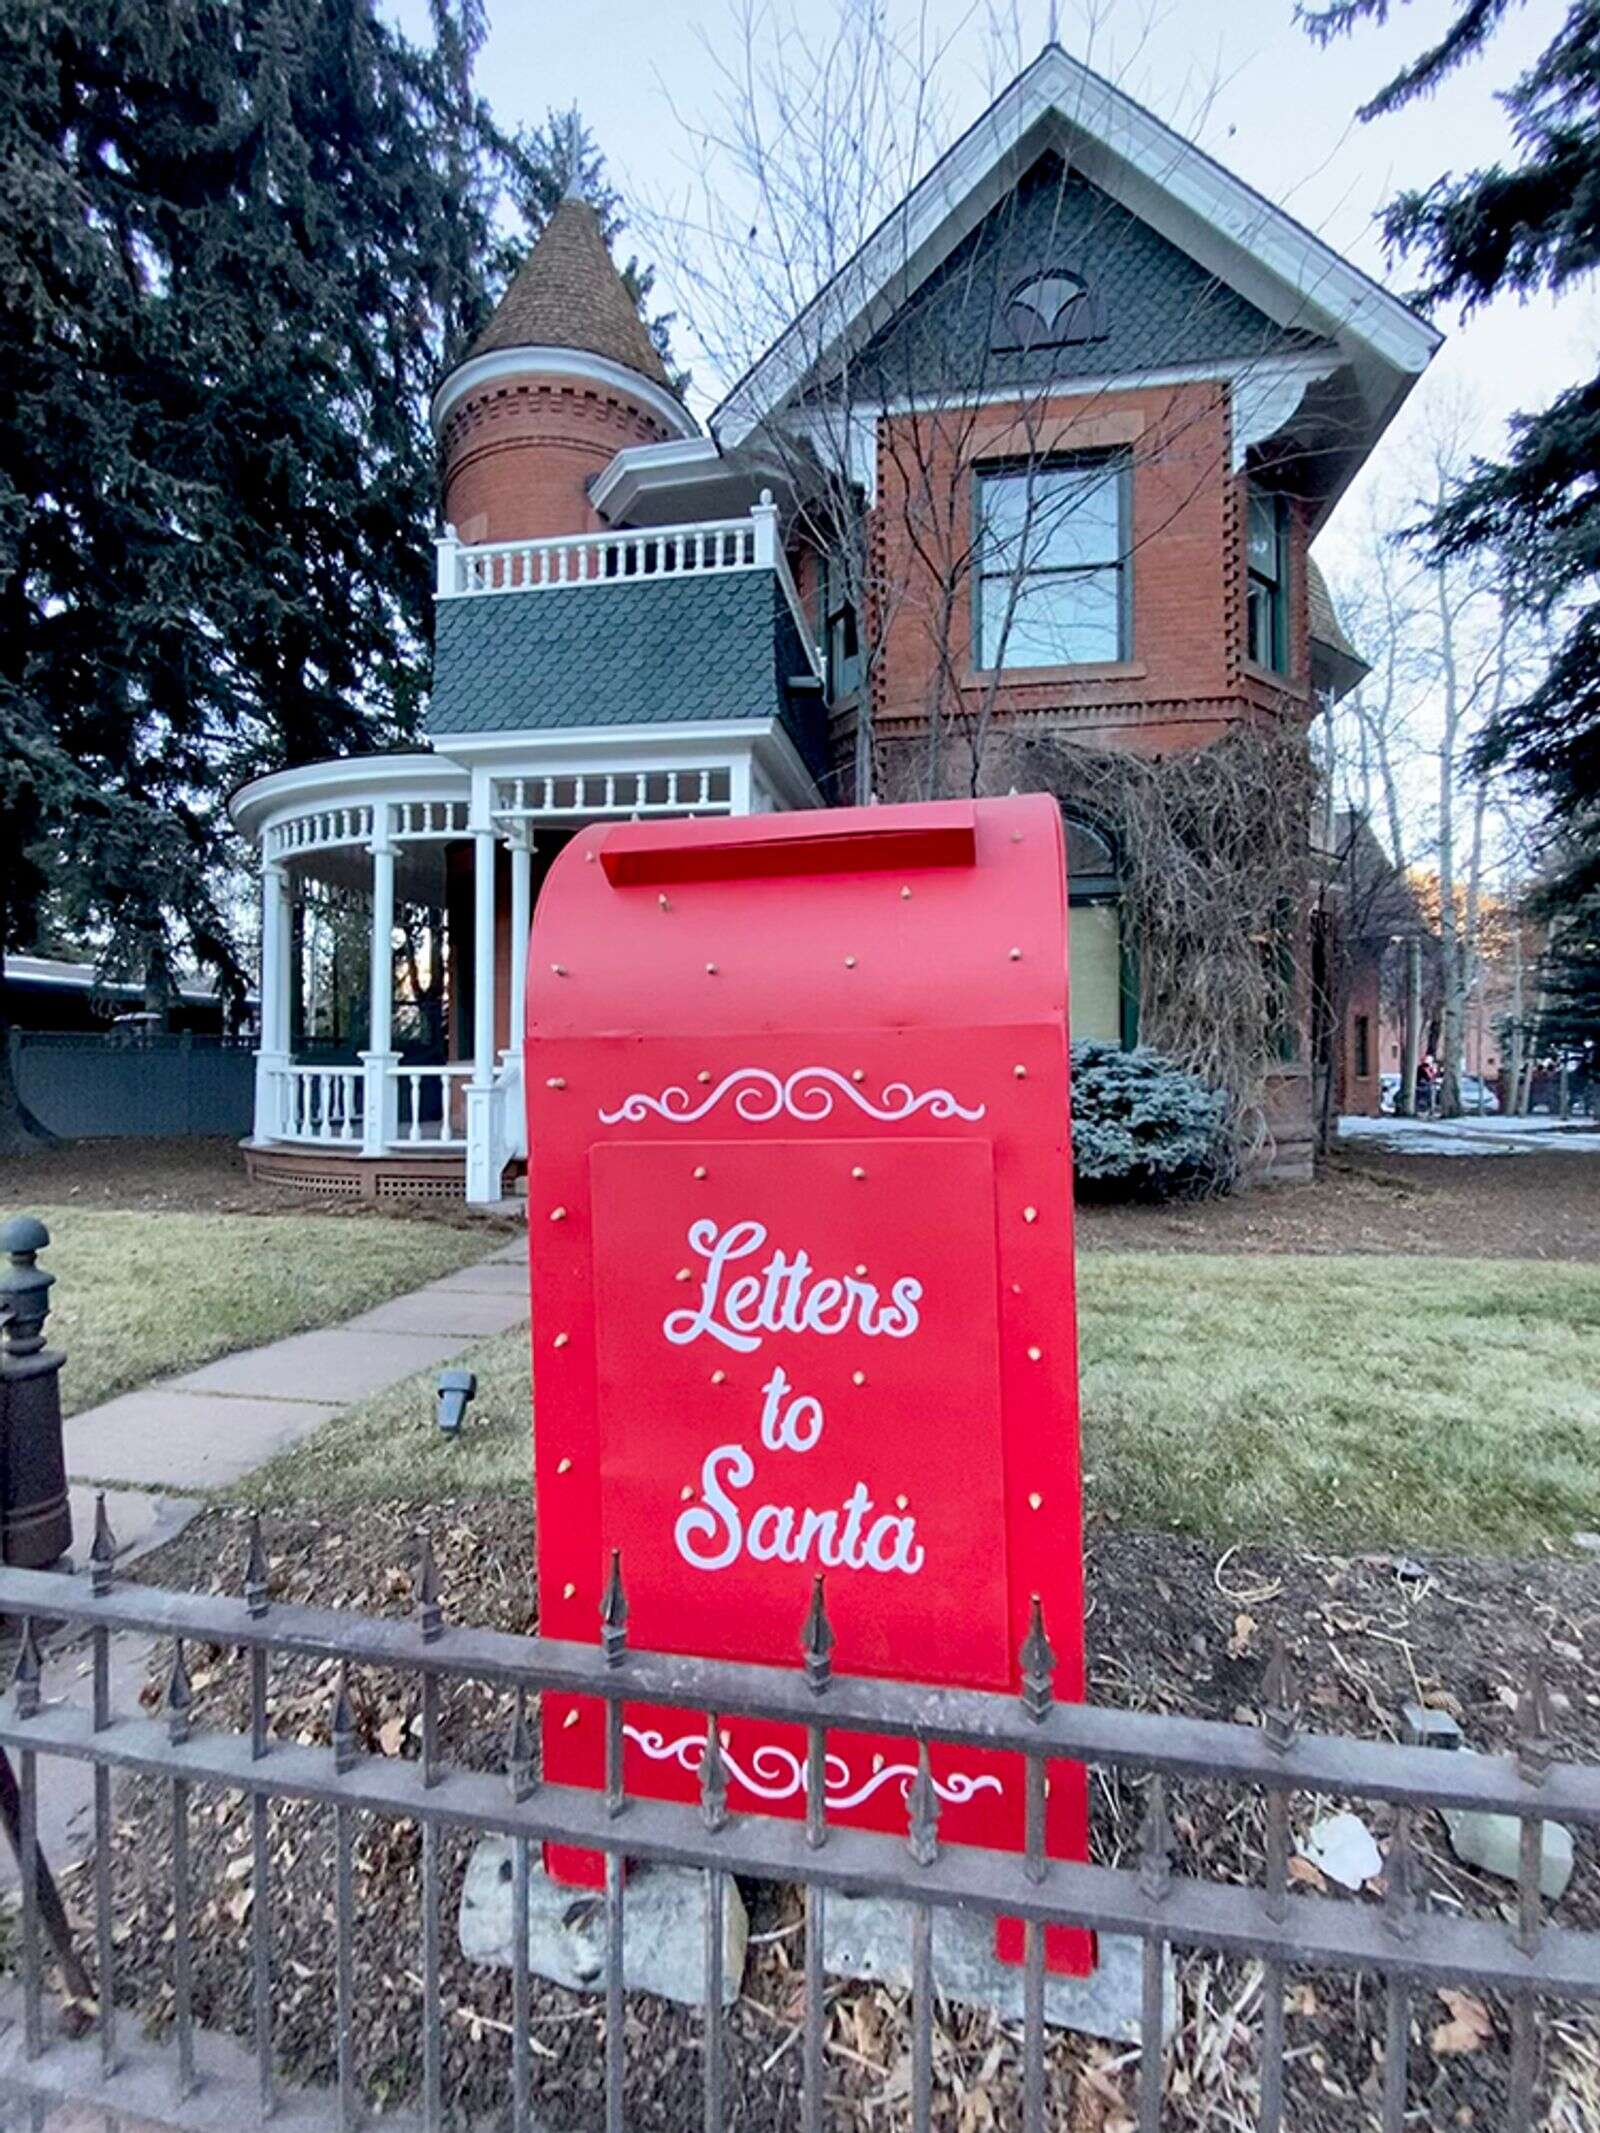 The Sardy House's larger-than-lifesize mailbox for letters to Santa.